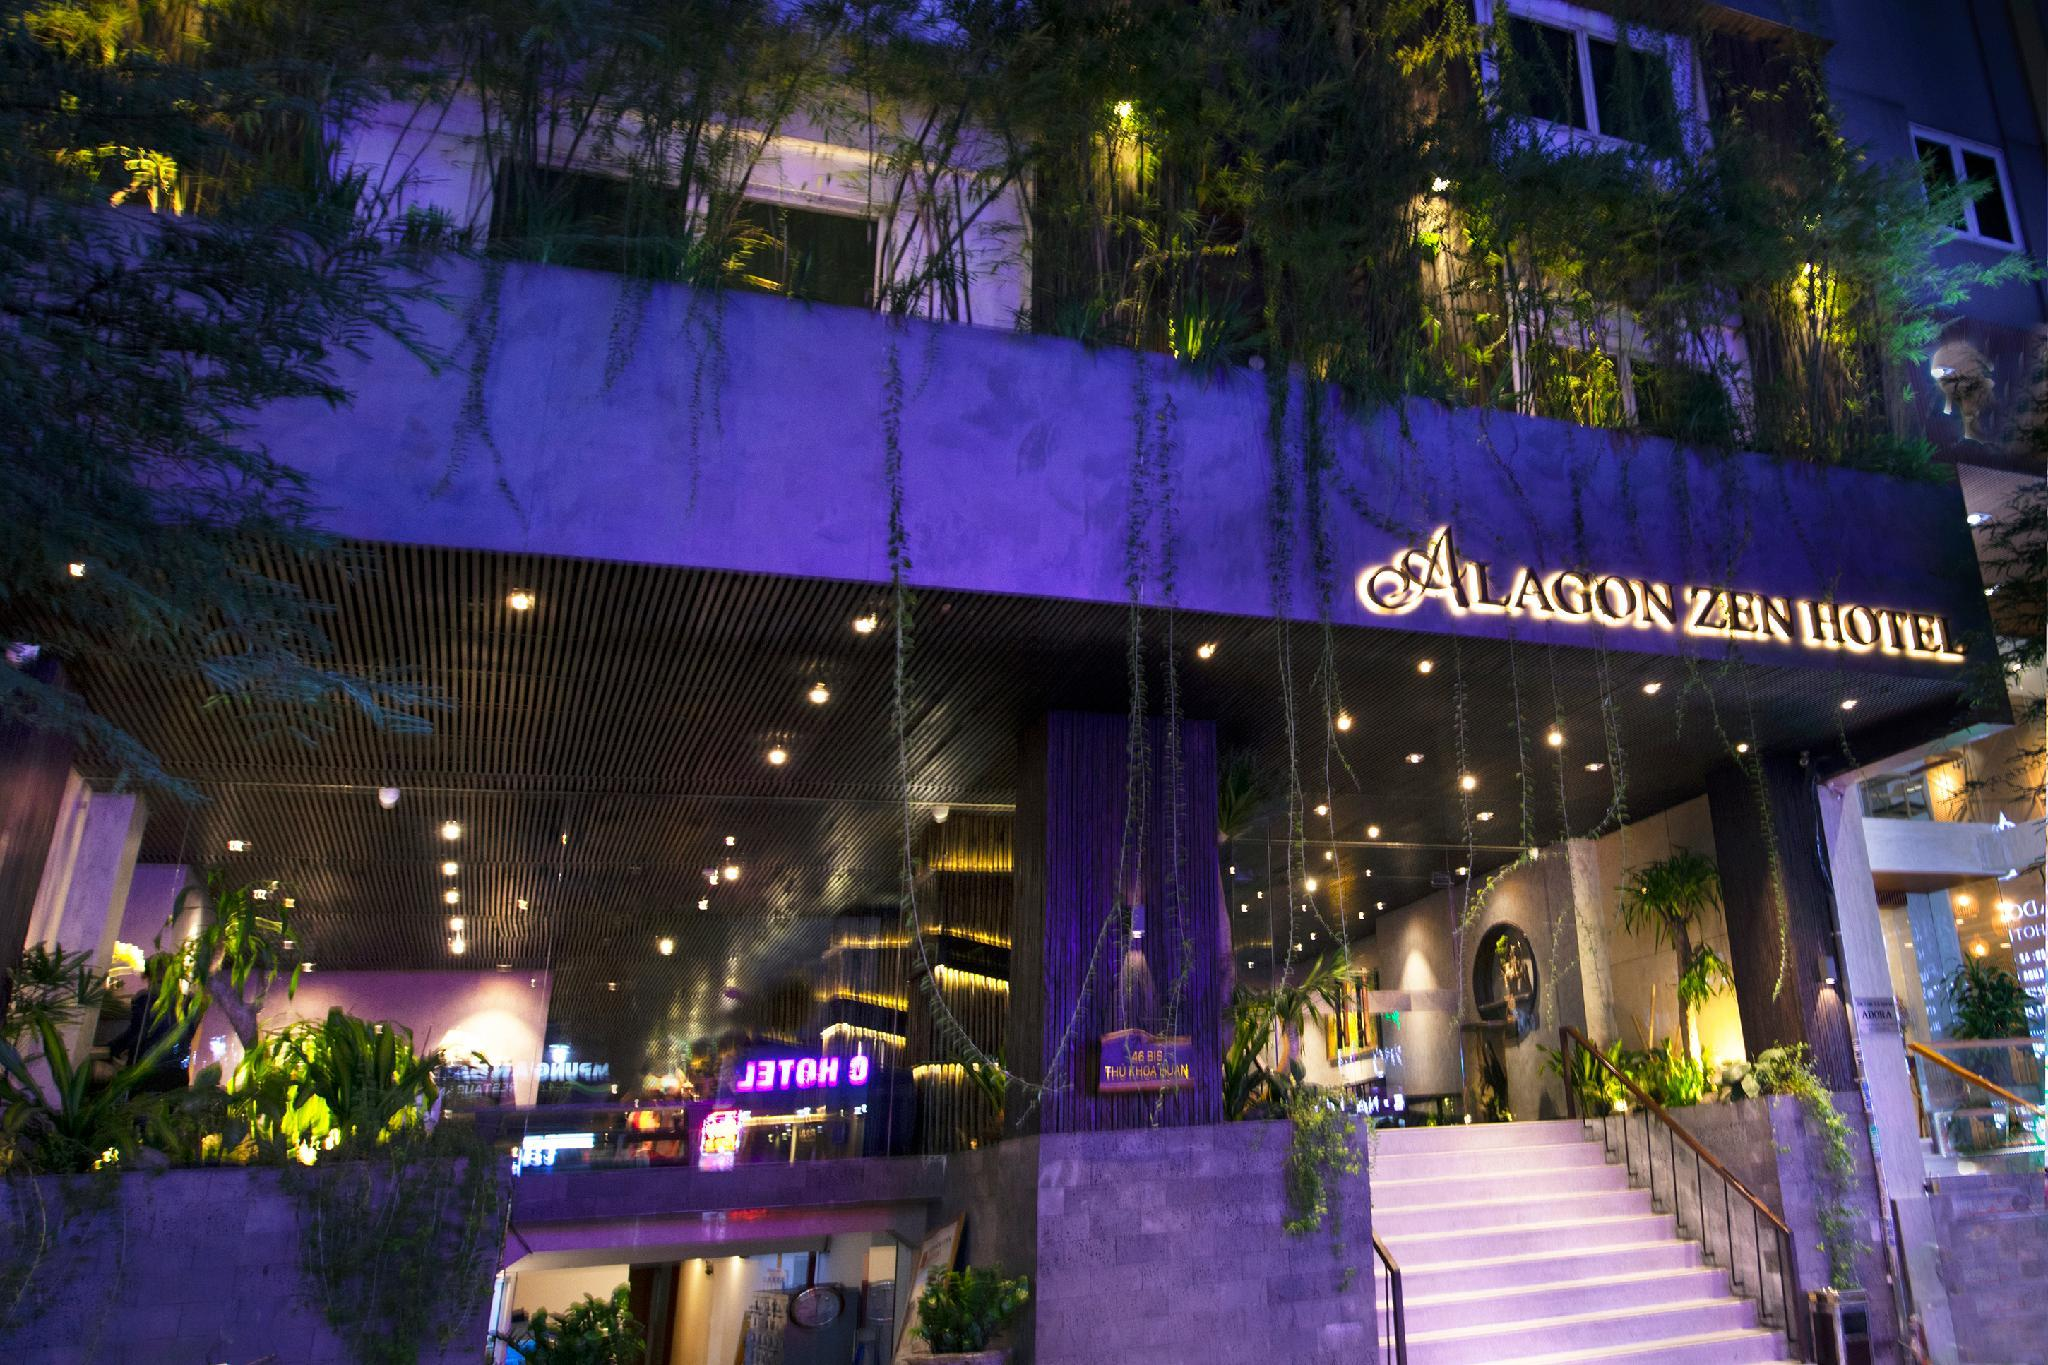 Alagon Zen Hotel And Spa